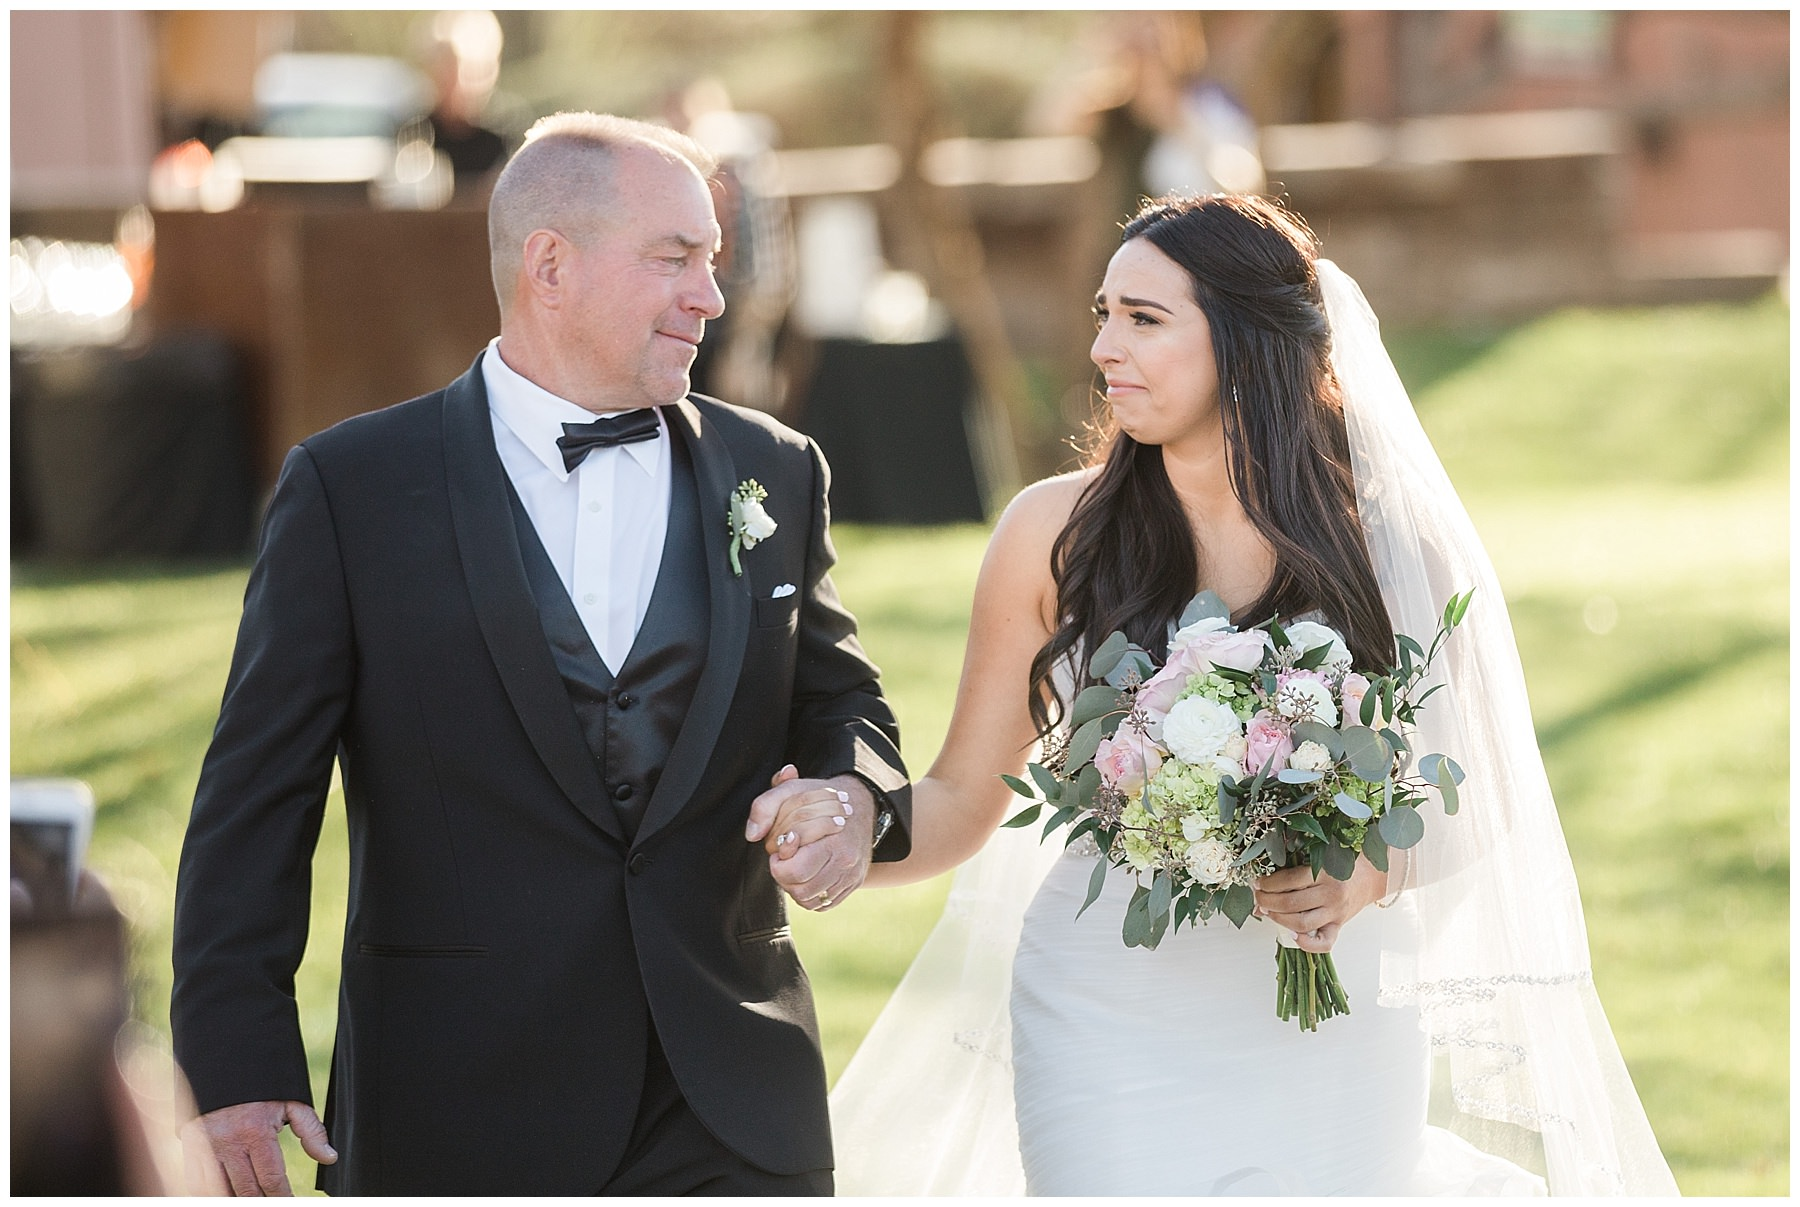 Emotional Bride and Father walking down aisle at wedding